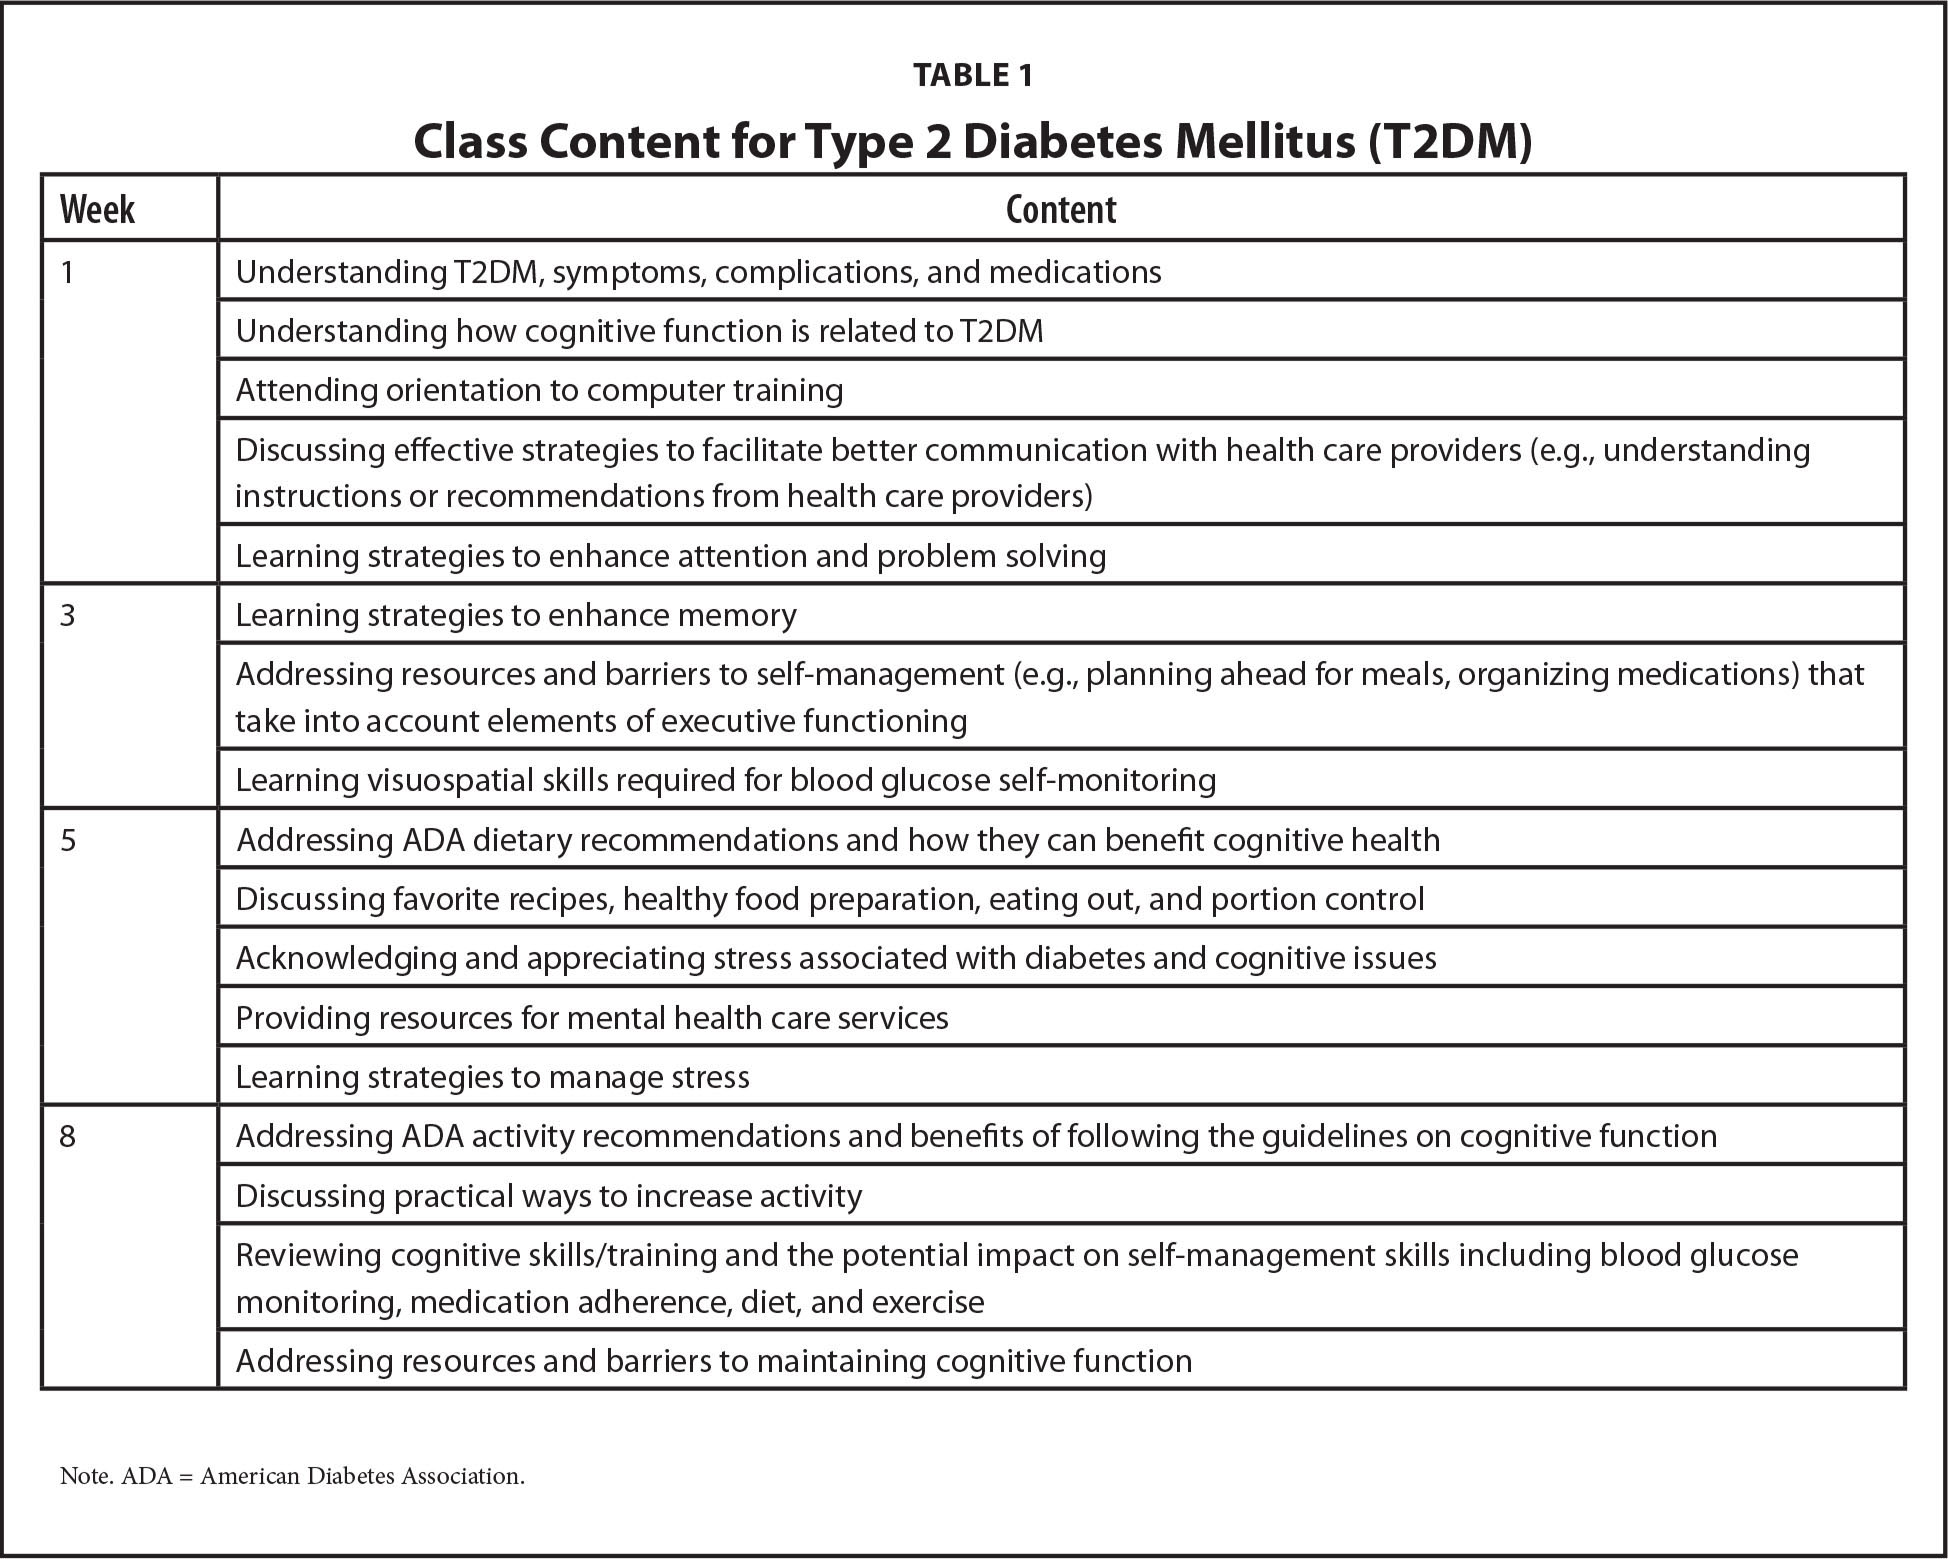 Class Content for Type 2 Diabetes Mellitus (T2DM)